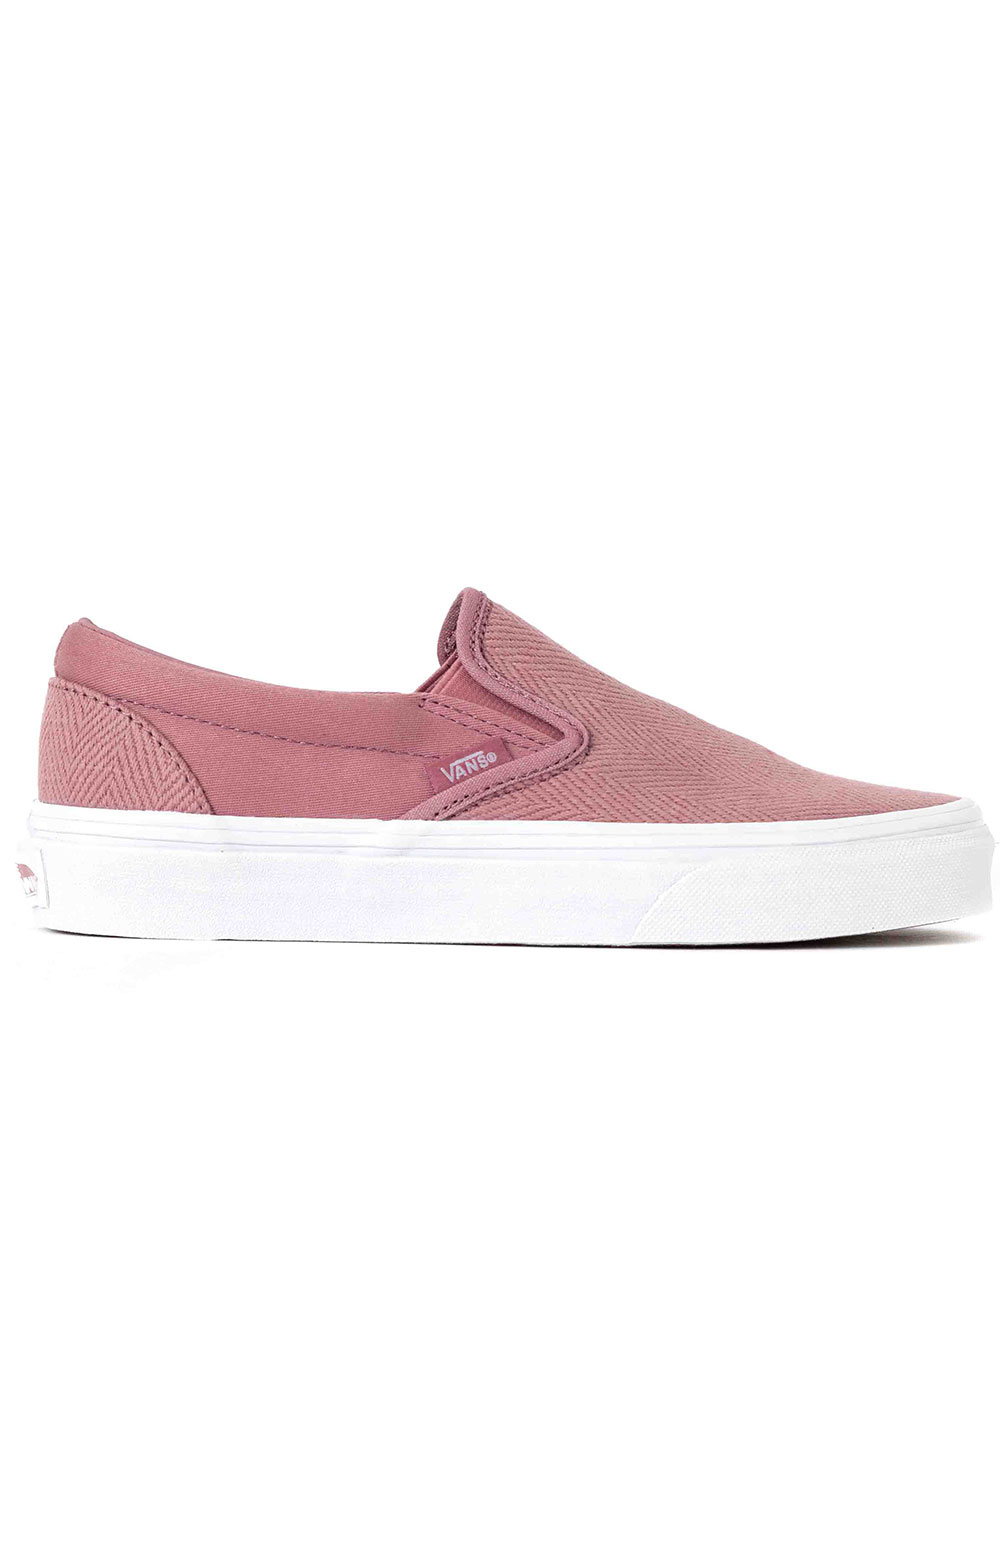 (BV3V91) Herringbone Classic Slip-On Shoe - Nostalgia Rose/True White